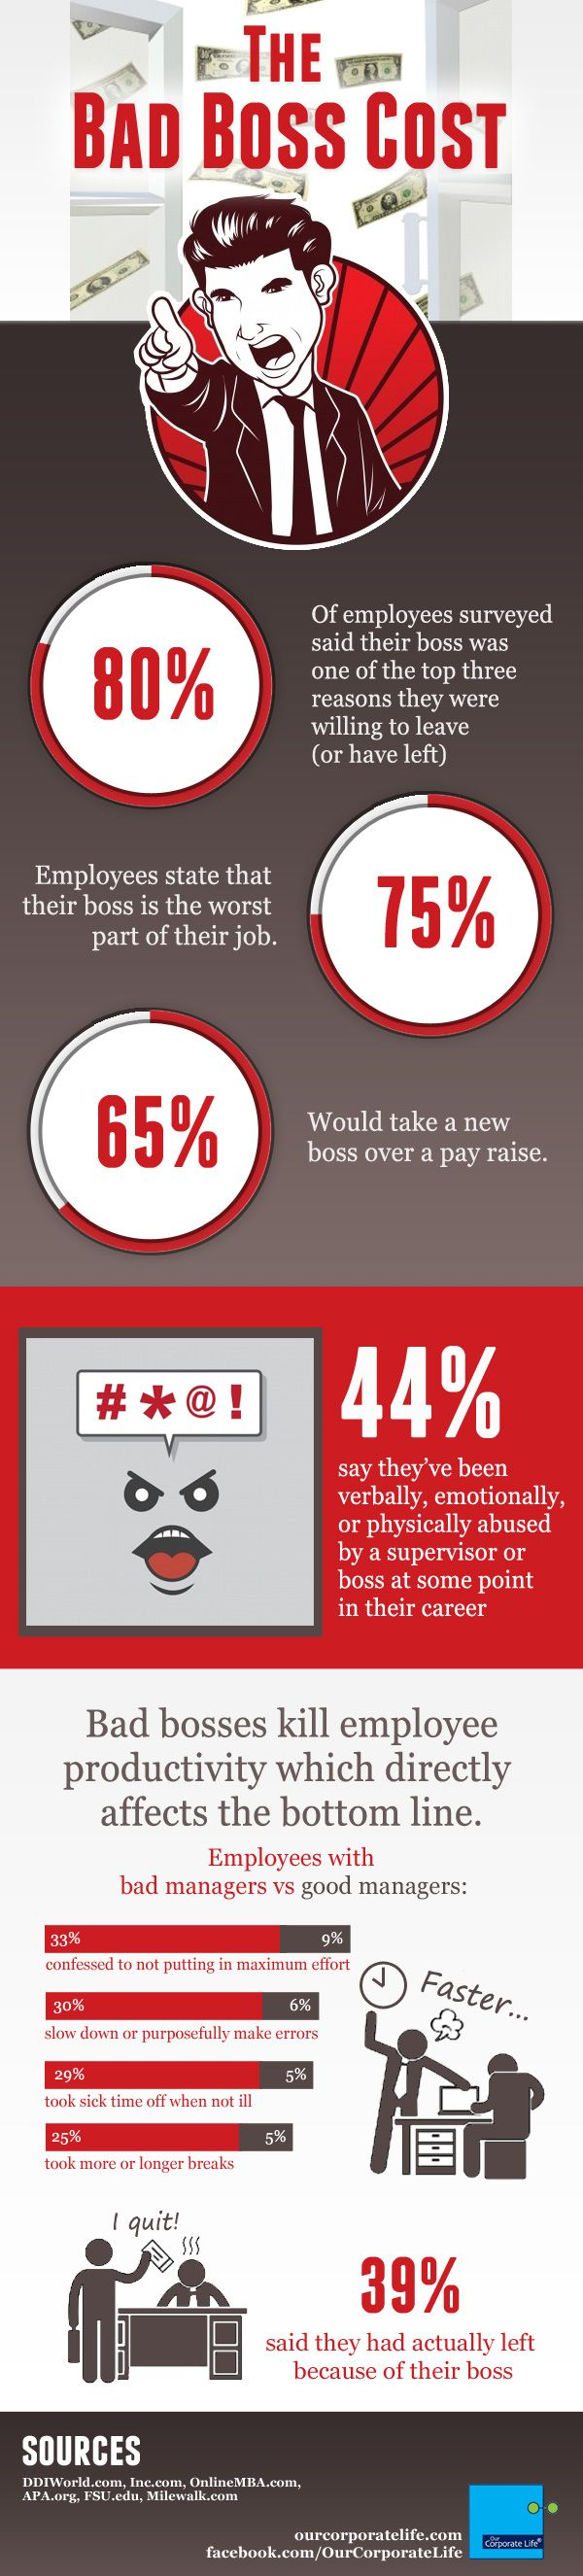 best images about jobs careers the office infographic the bad boss cost our corporate life ourcorporatelife